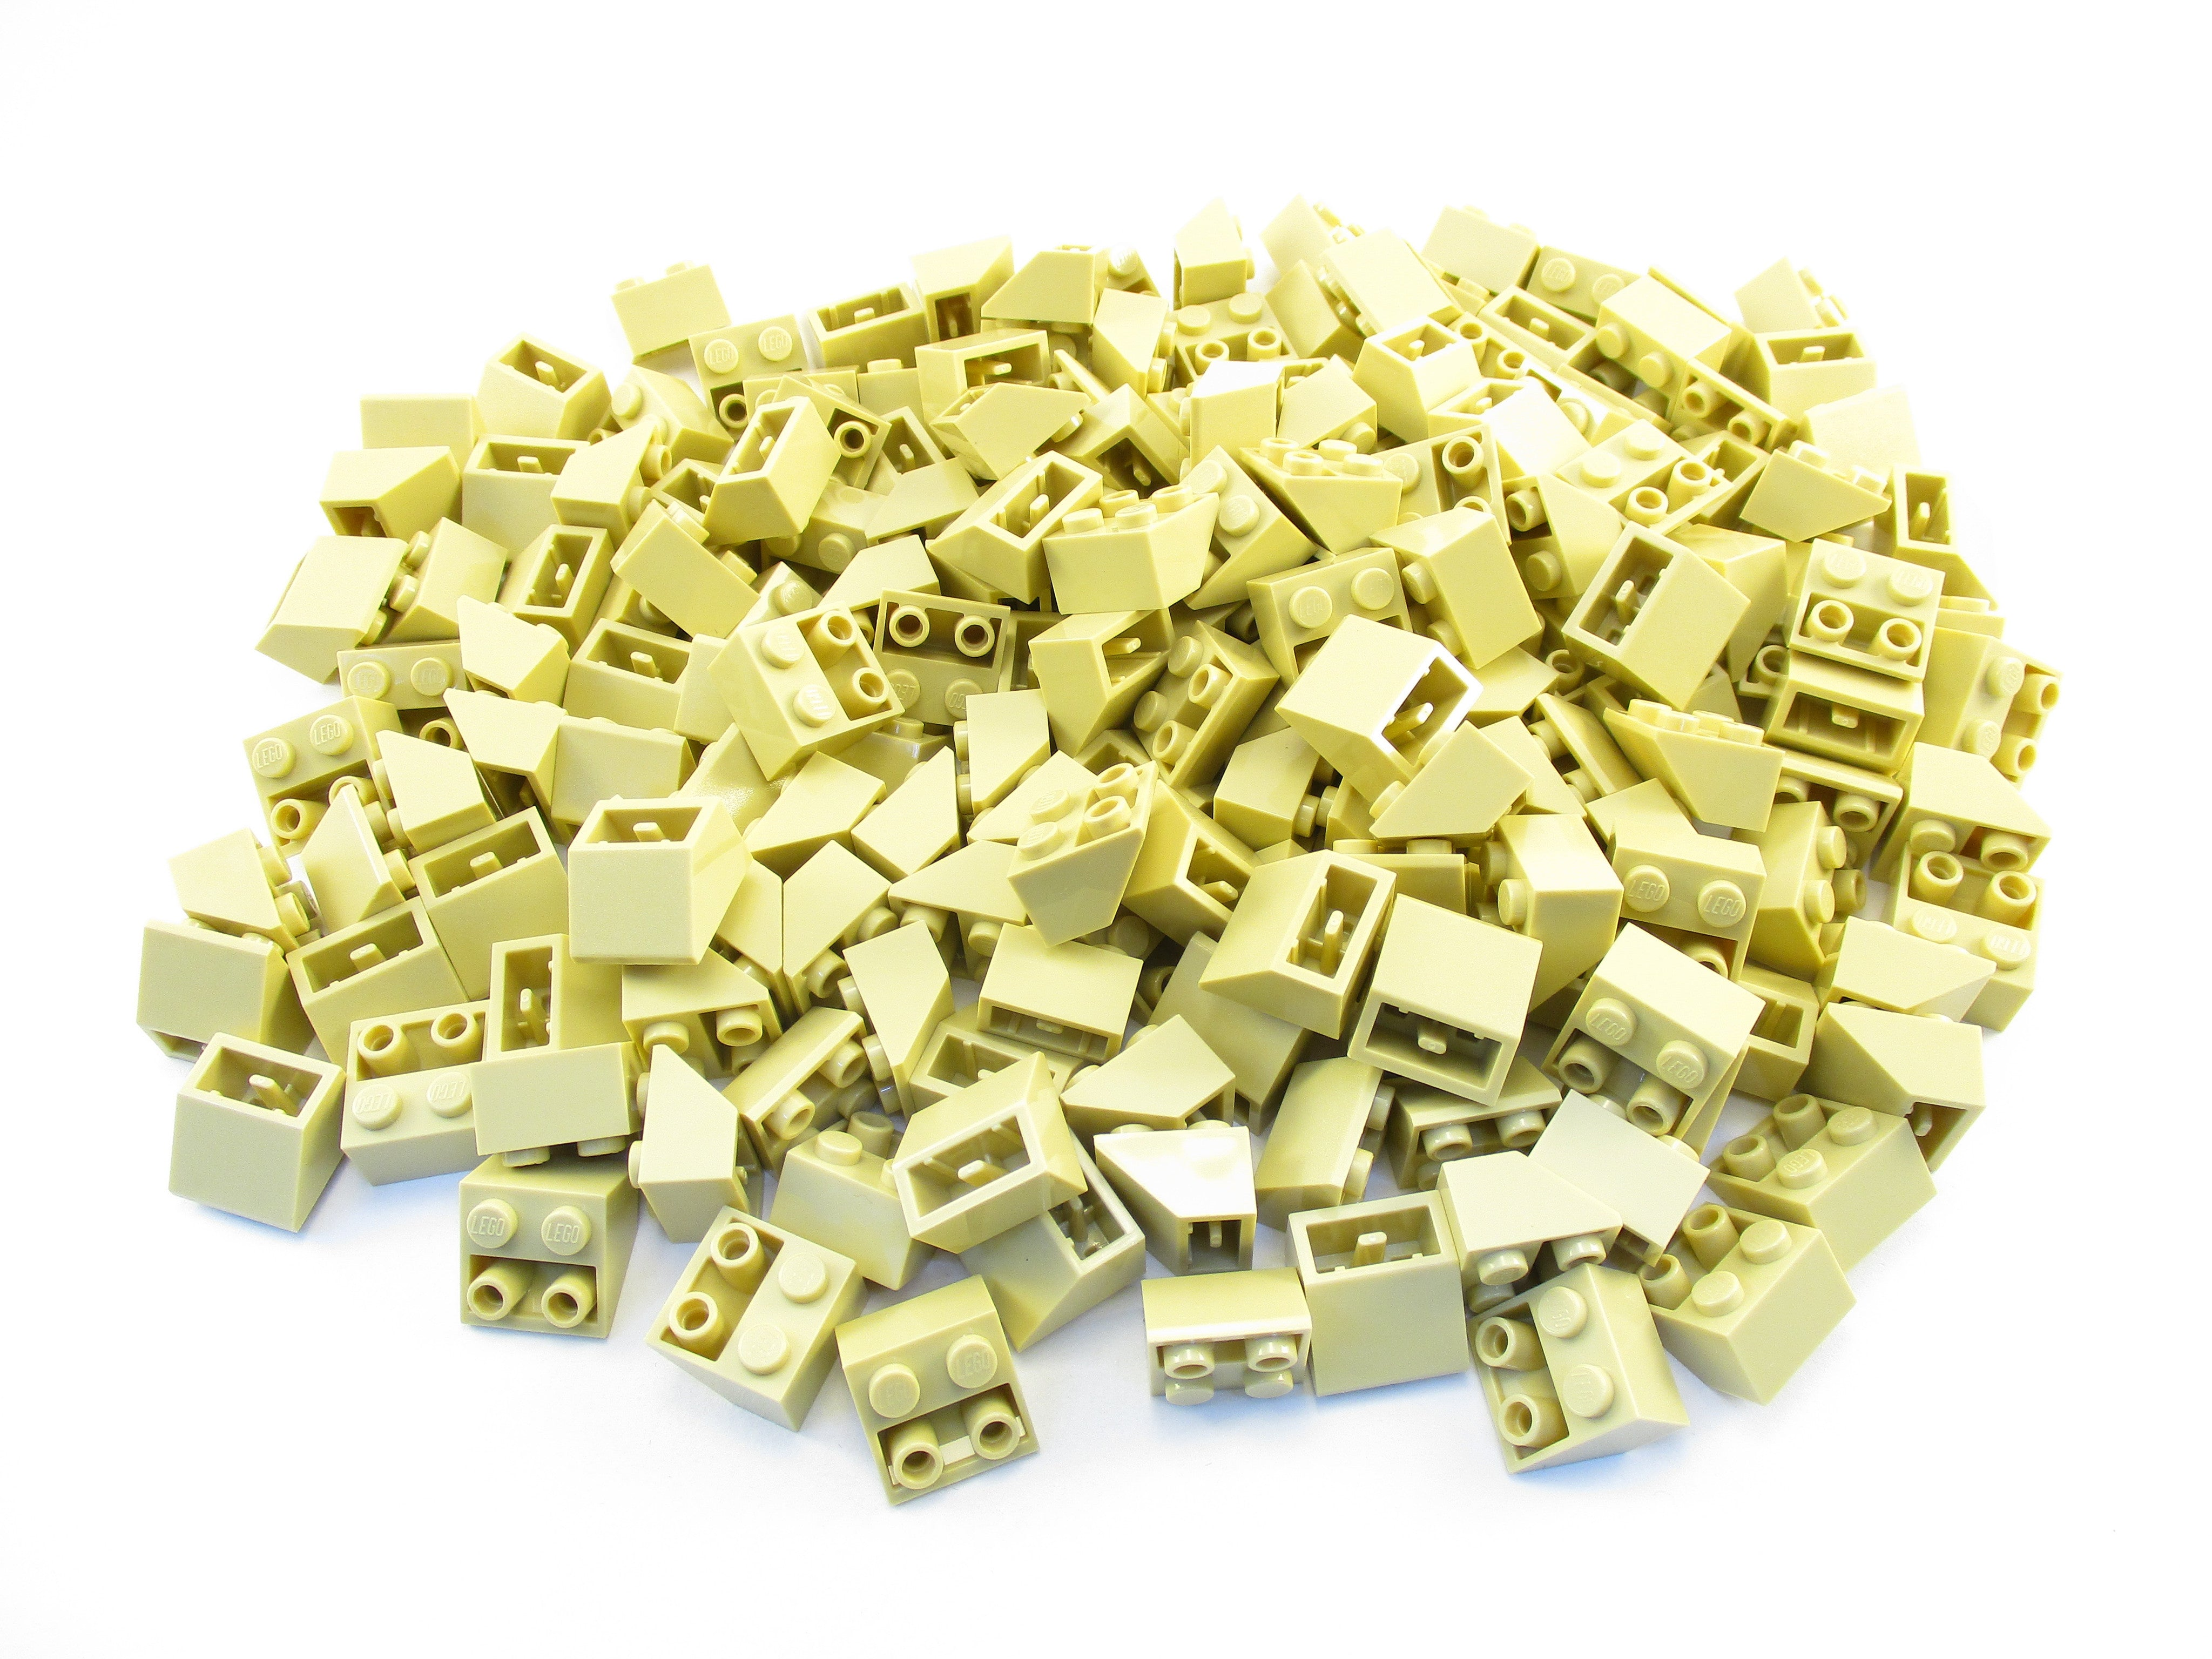 LEGO Tan Slope Inverted 45 2x2 Lot of 100 Parts Pieces 3660